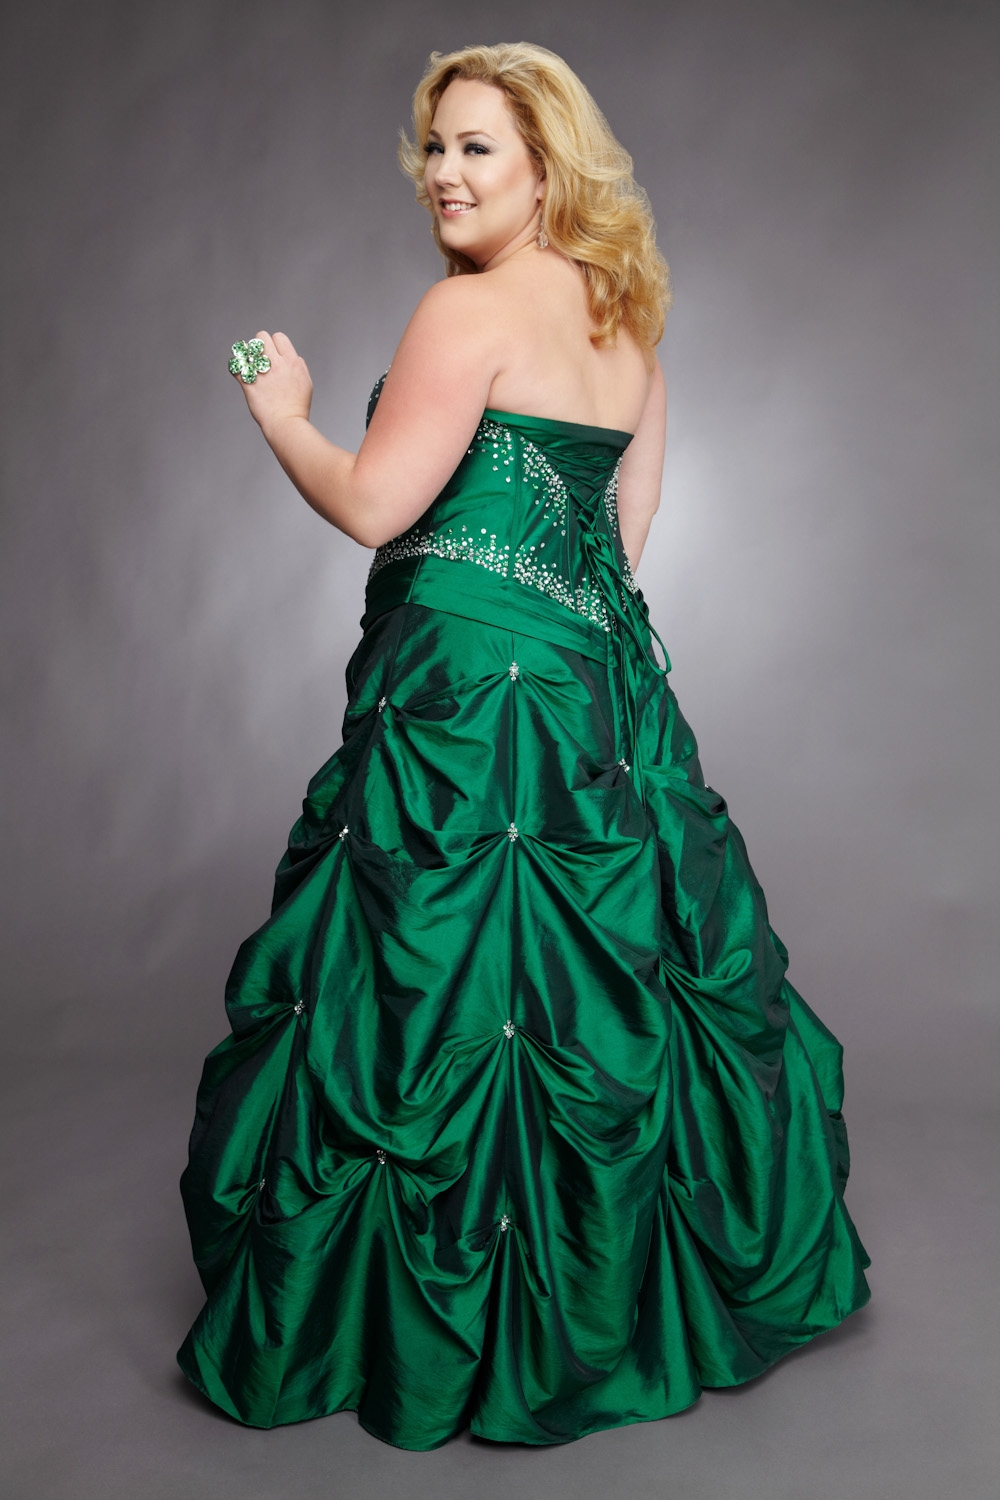 WhiteAzalea Ball Gowns: Tips for Plus Size Ball Gowns